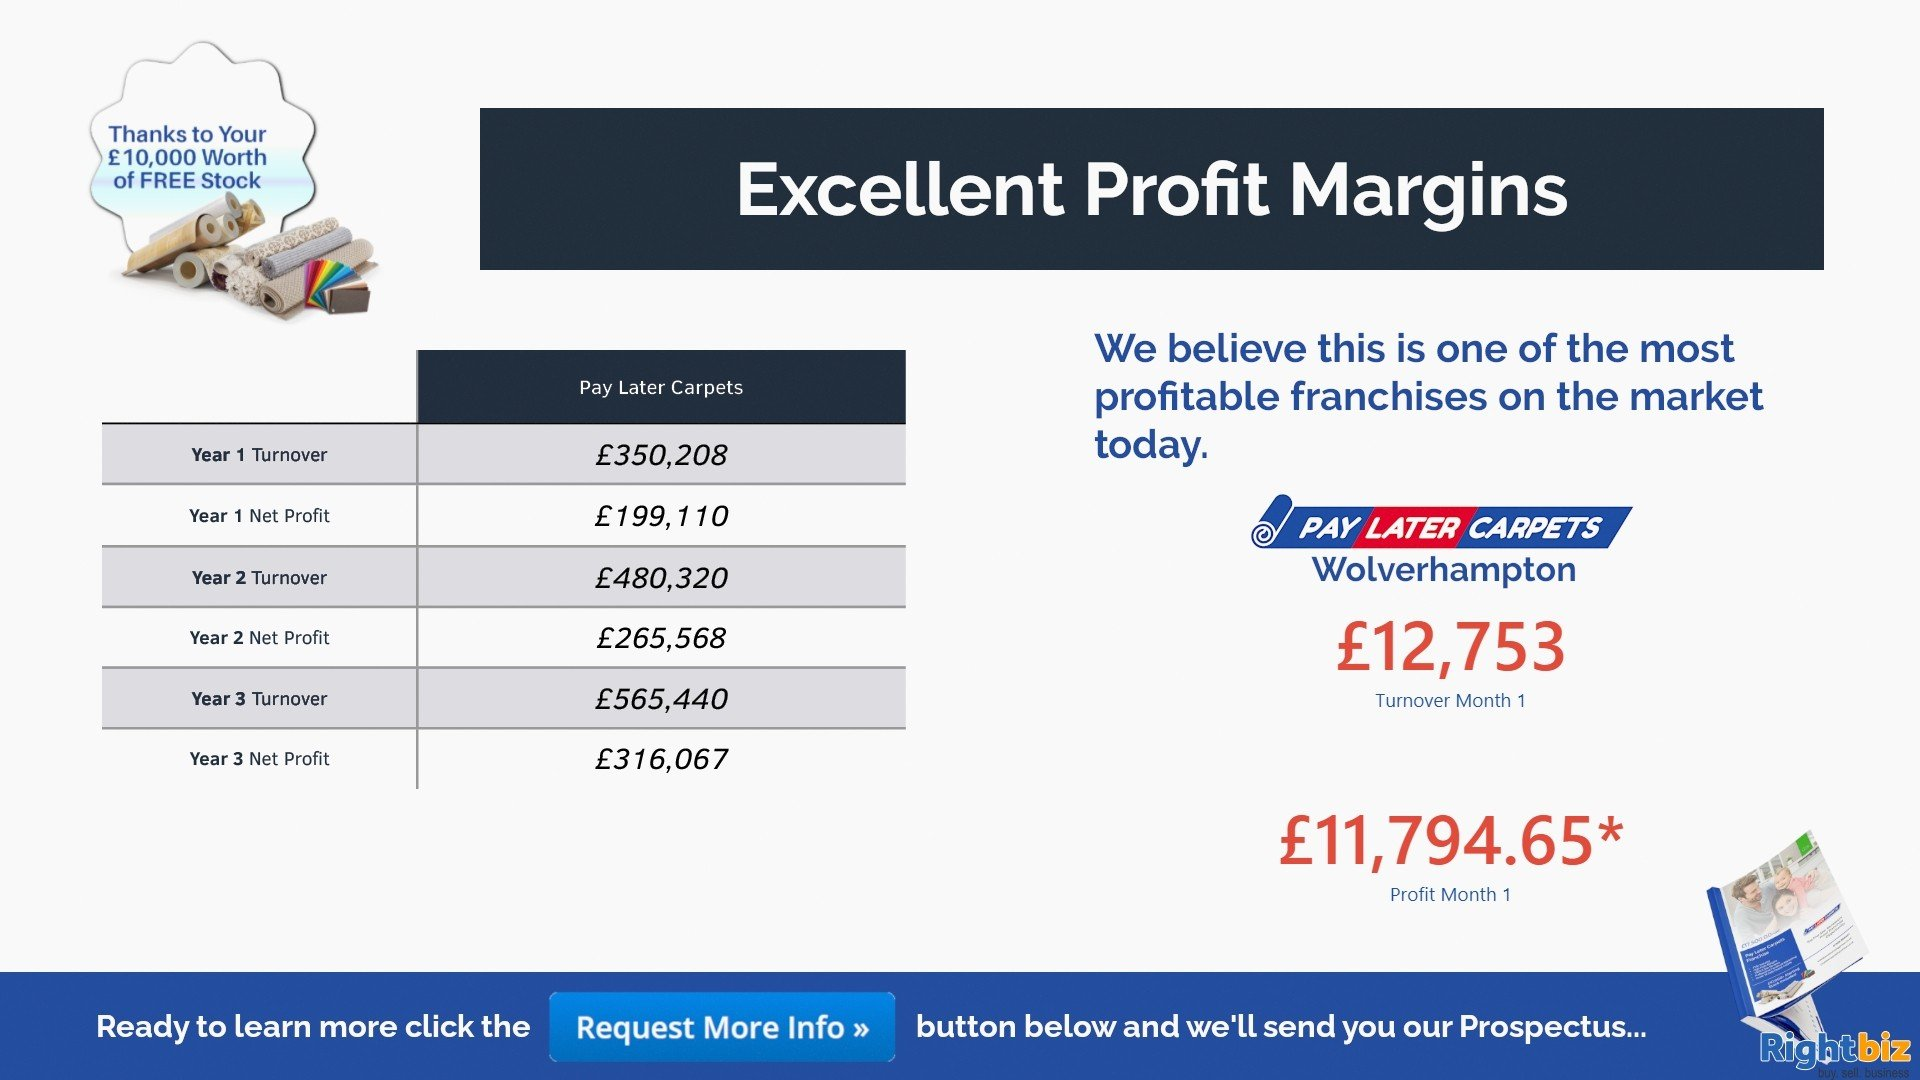 Pay Later Carpets Franchise Derry Our First Franchisee Made £11,000+ Profit in Month One - Image 3